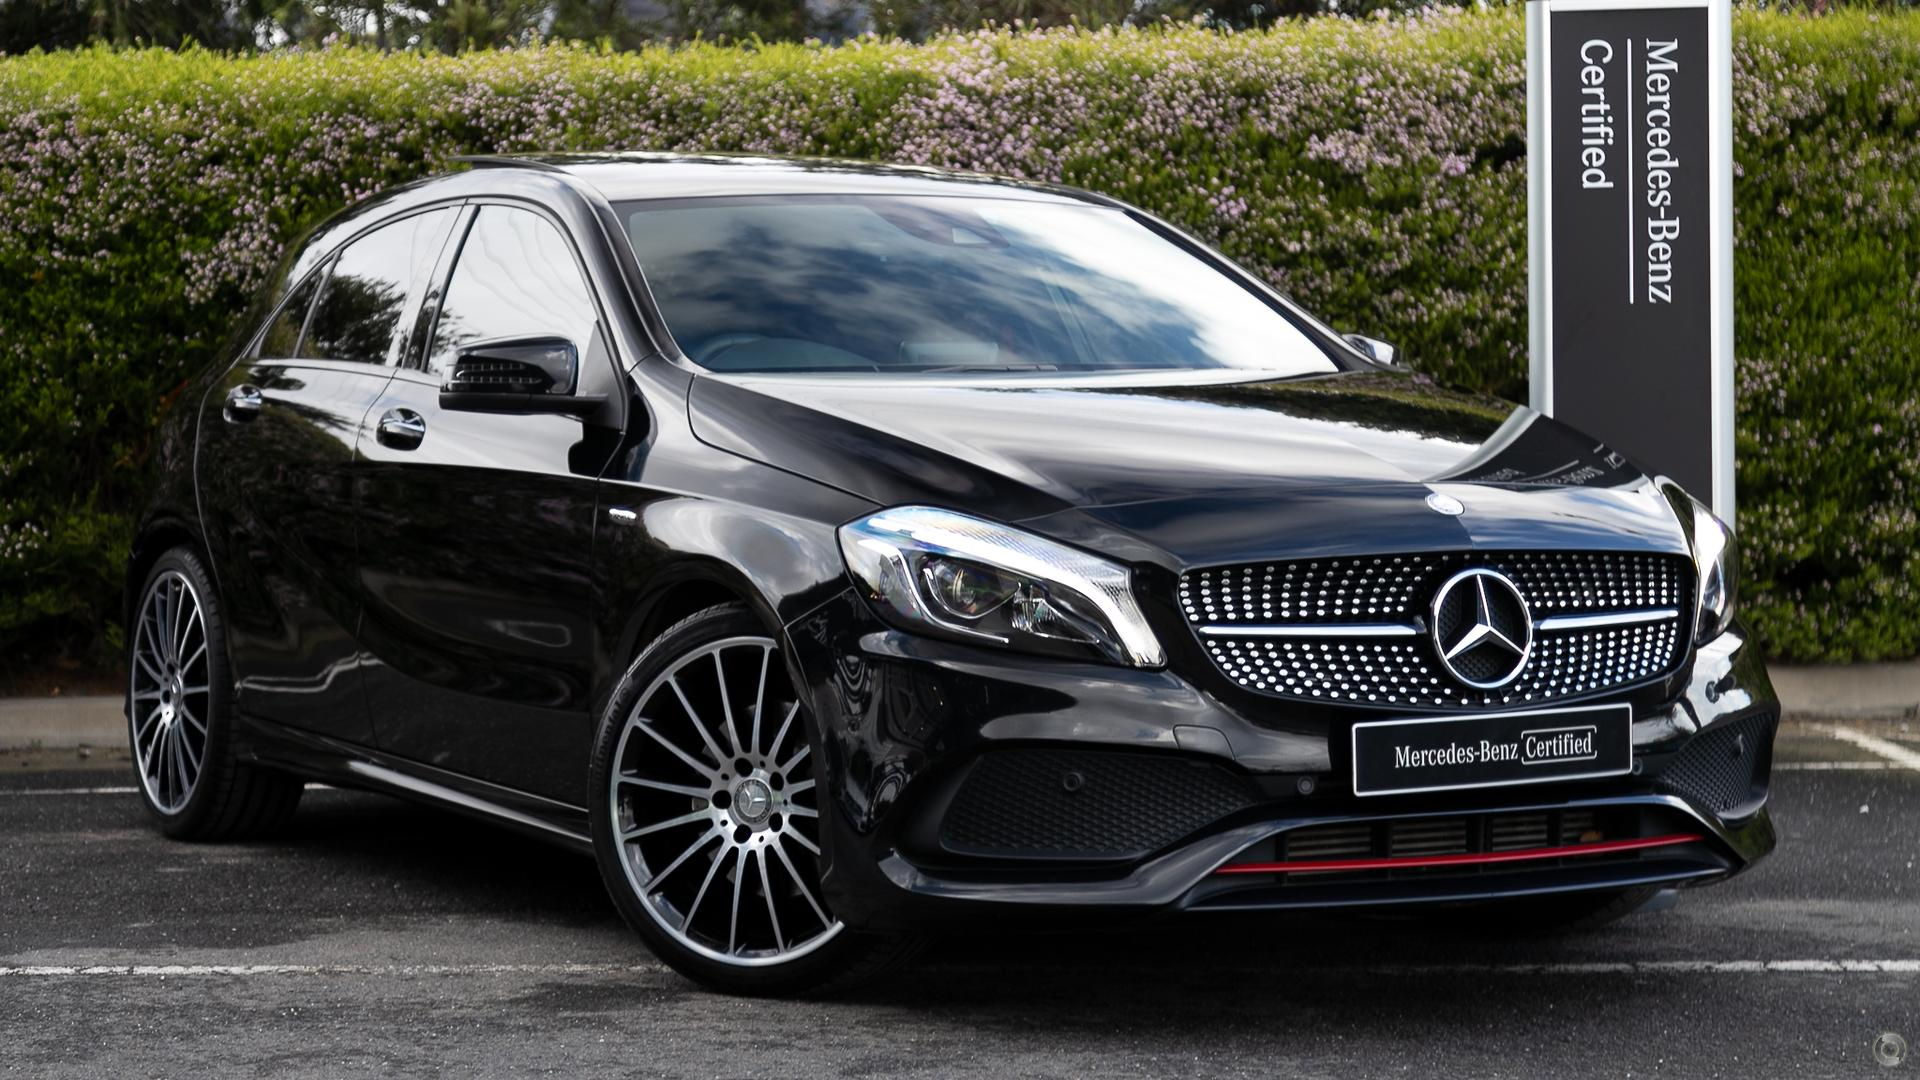 2016 Mercedes-Benz A-CLASS Hatch